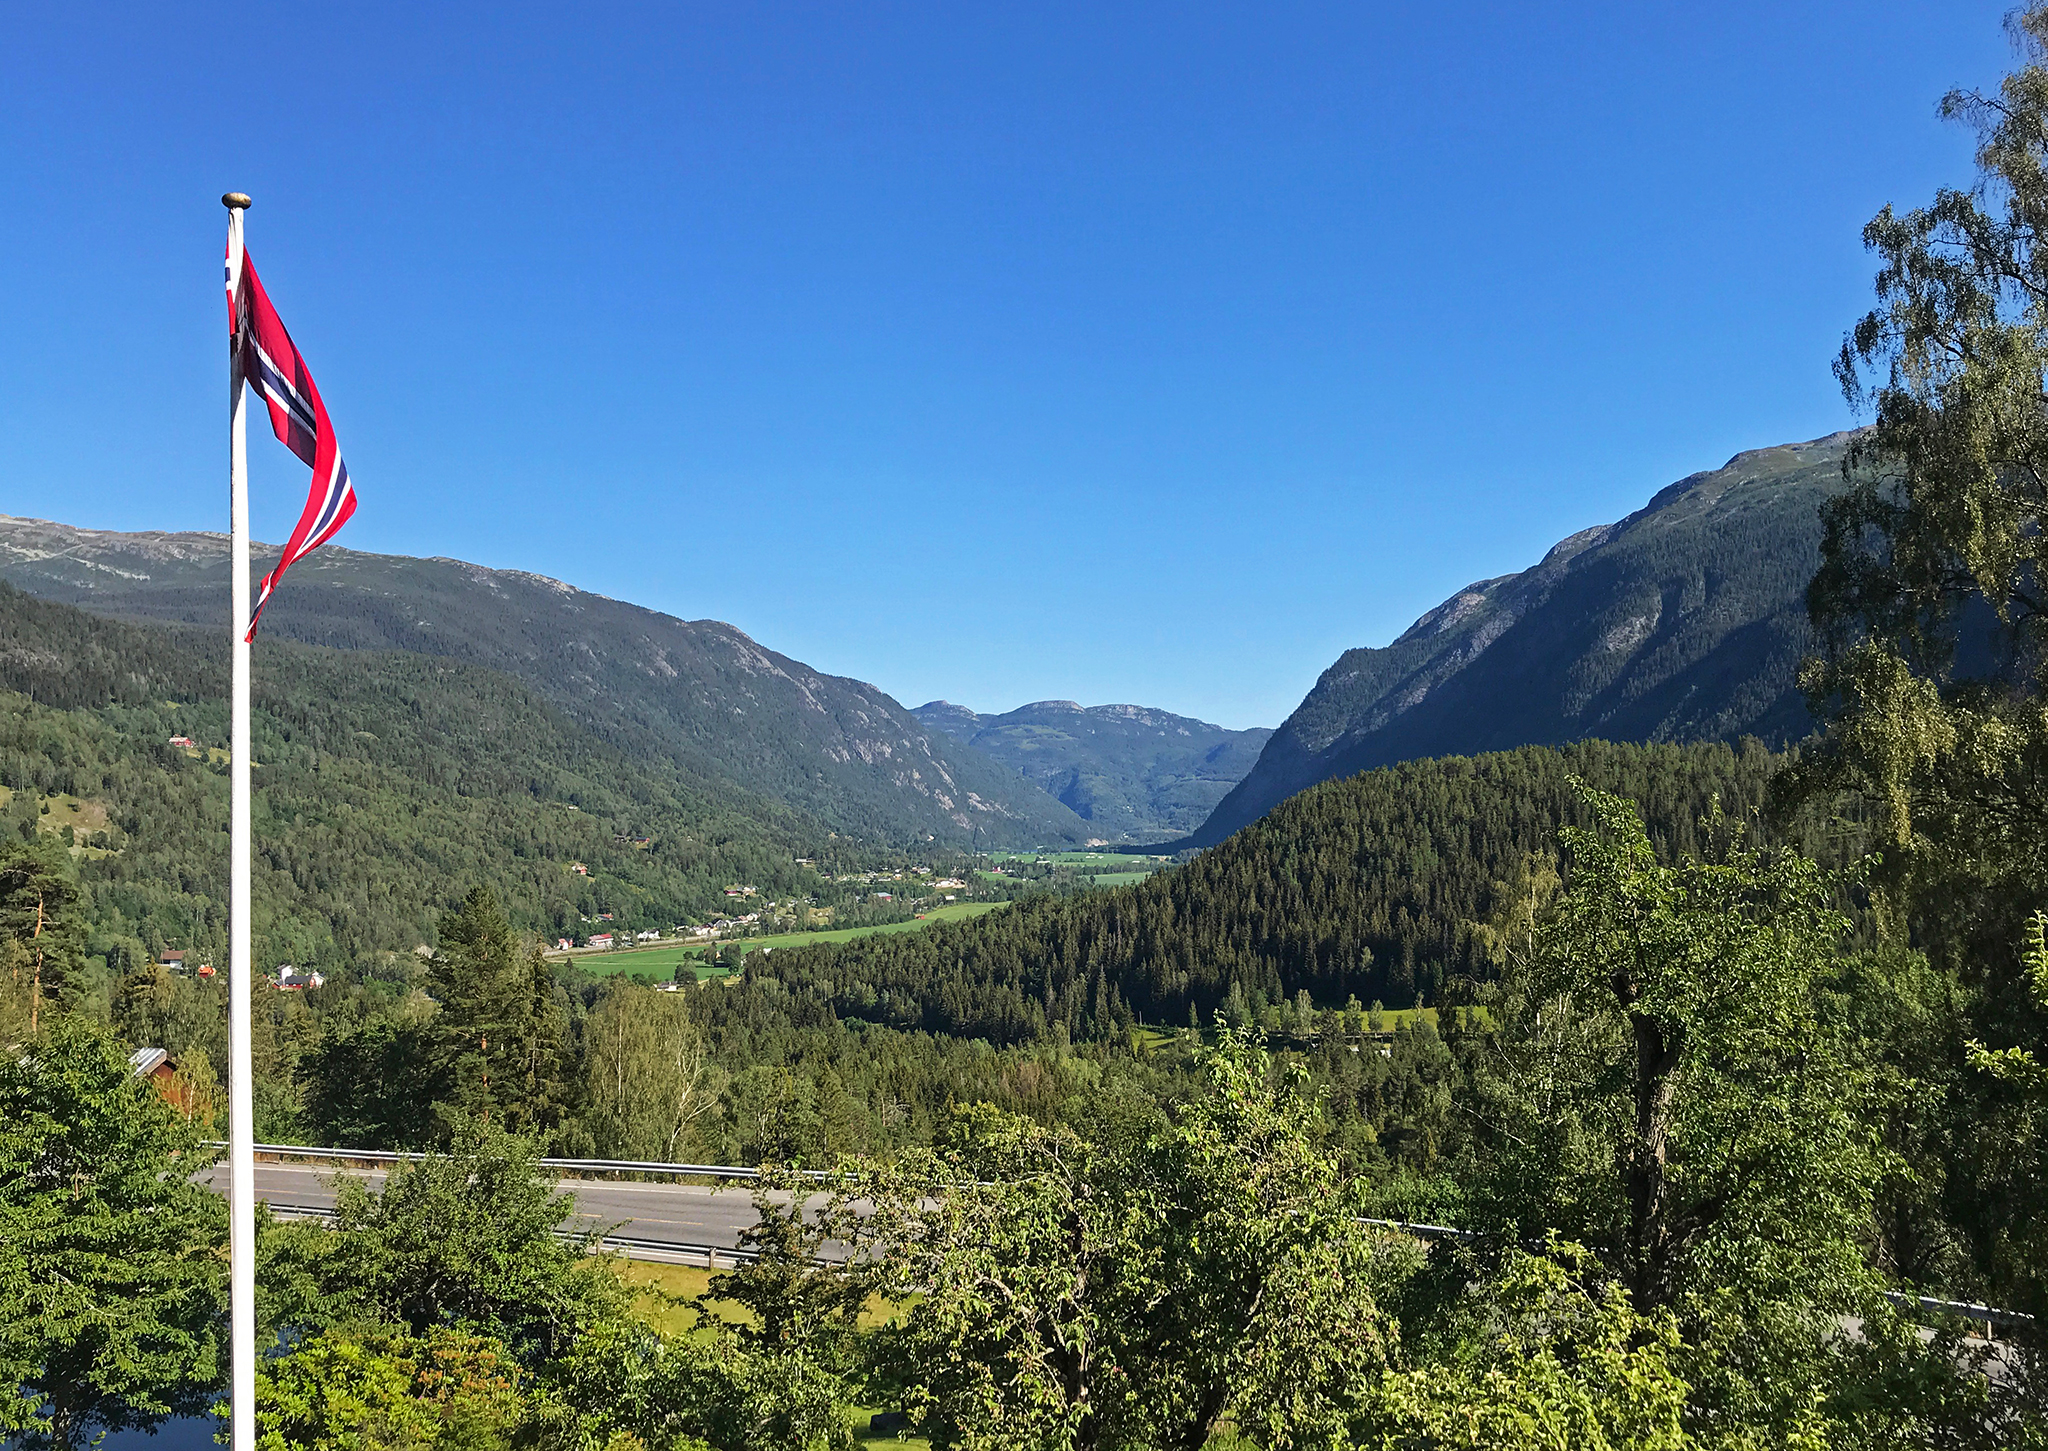 Flatdal (Flat valley) Norway, mid-July 2019